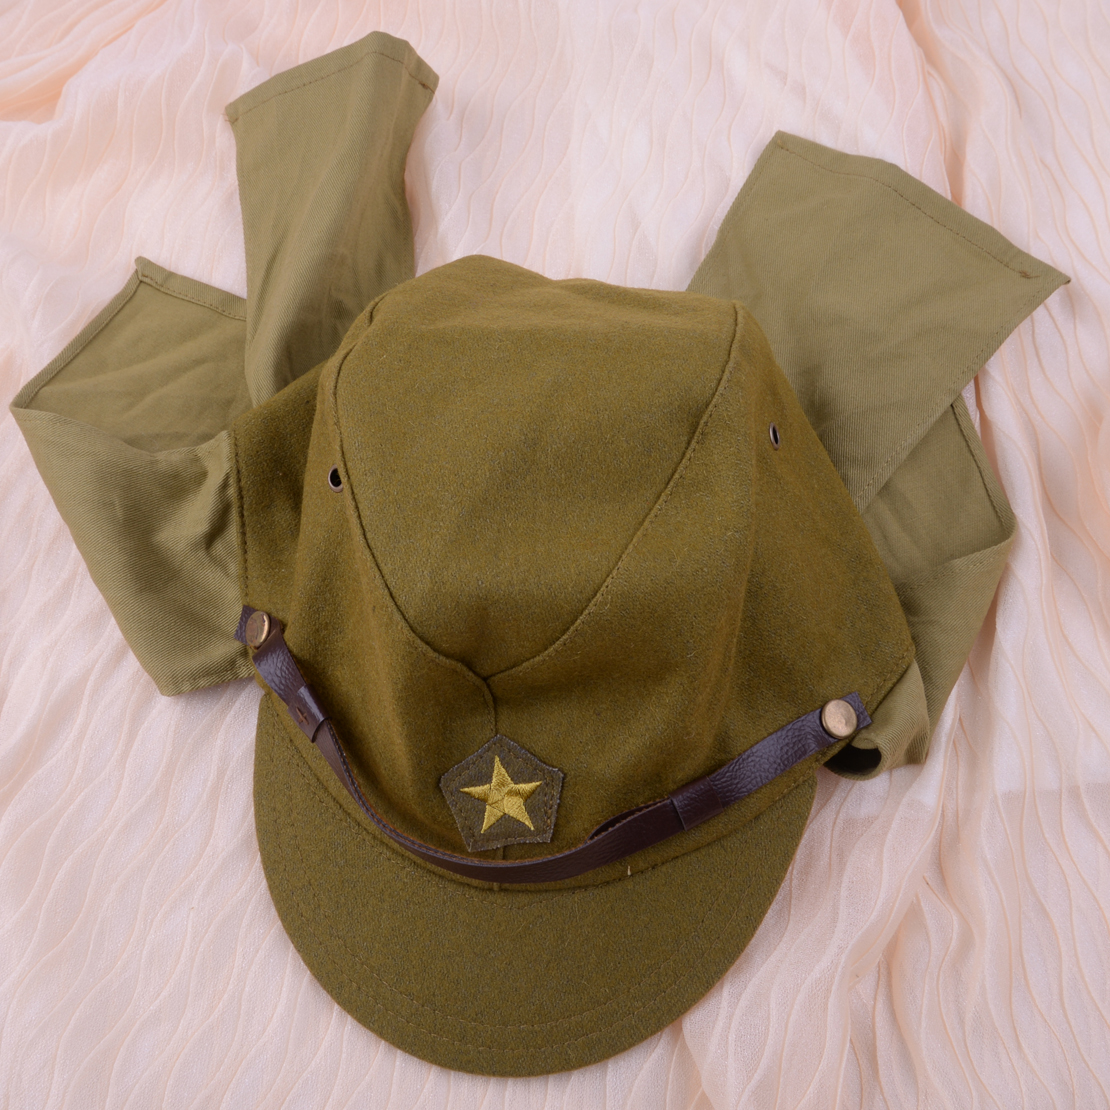 44193d99cb052 top 10 most popular us officier hat brands and get free shipping ...